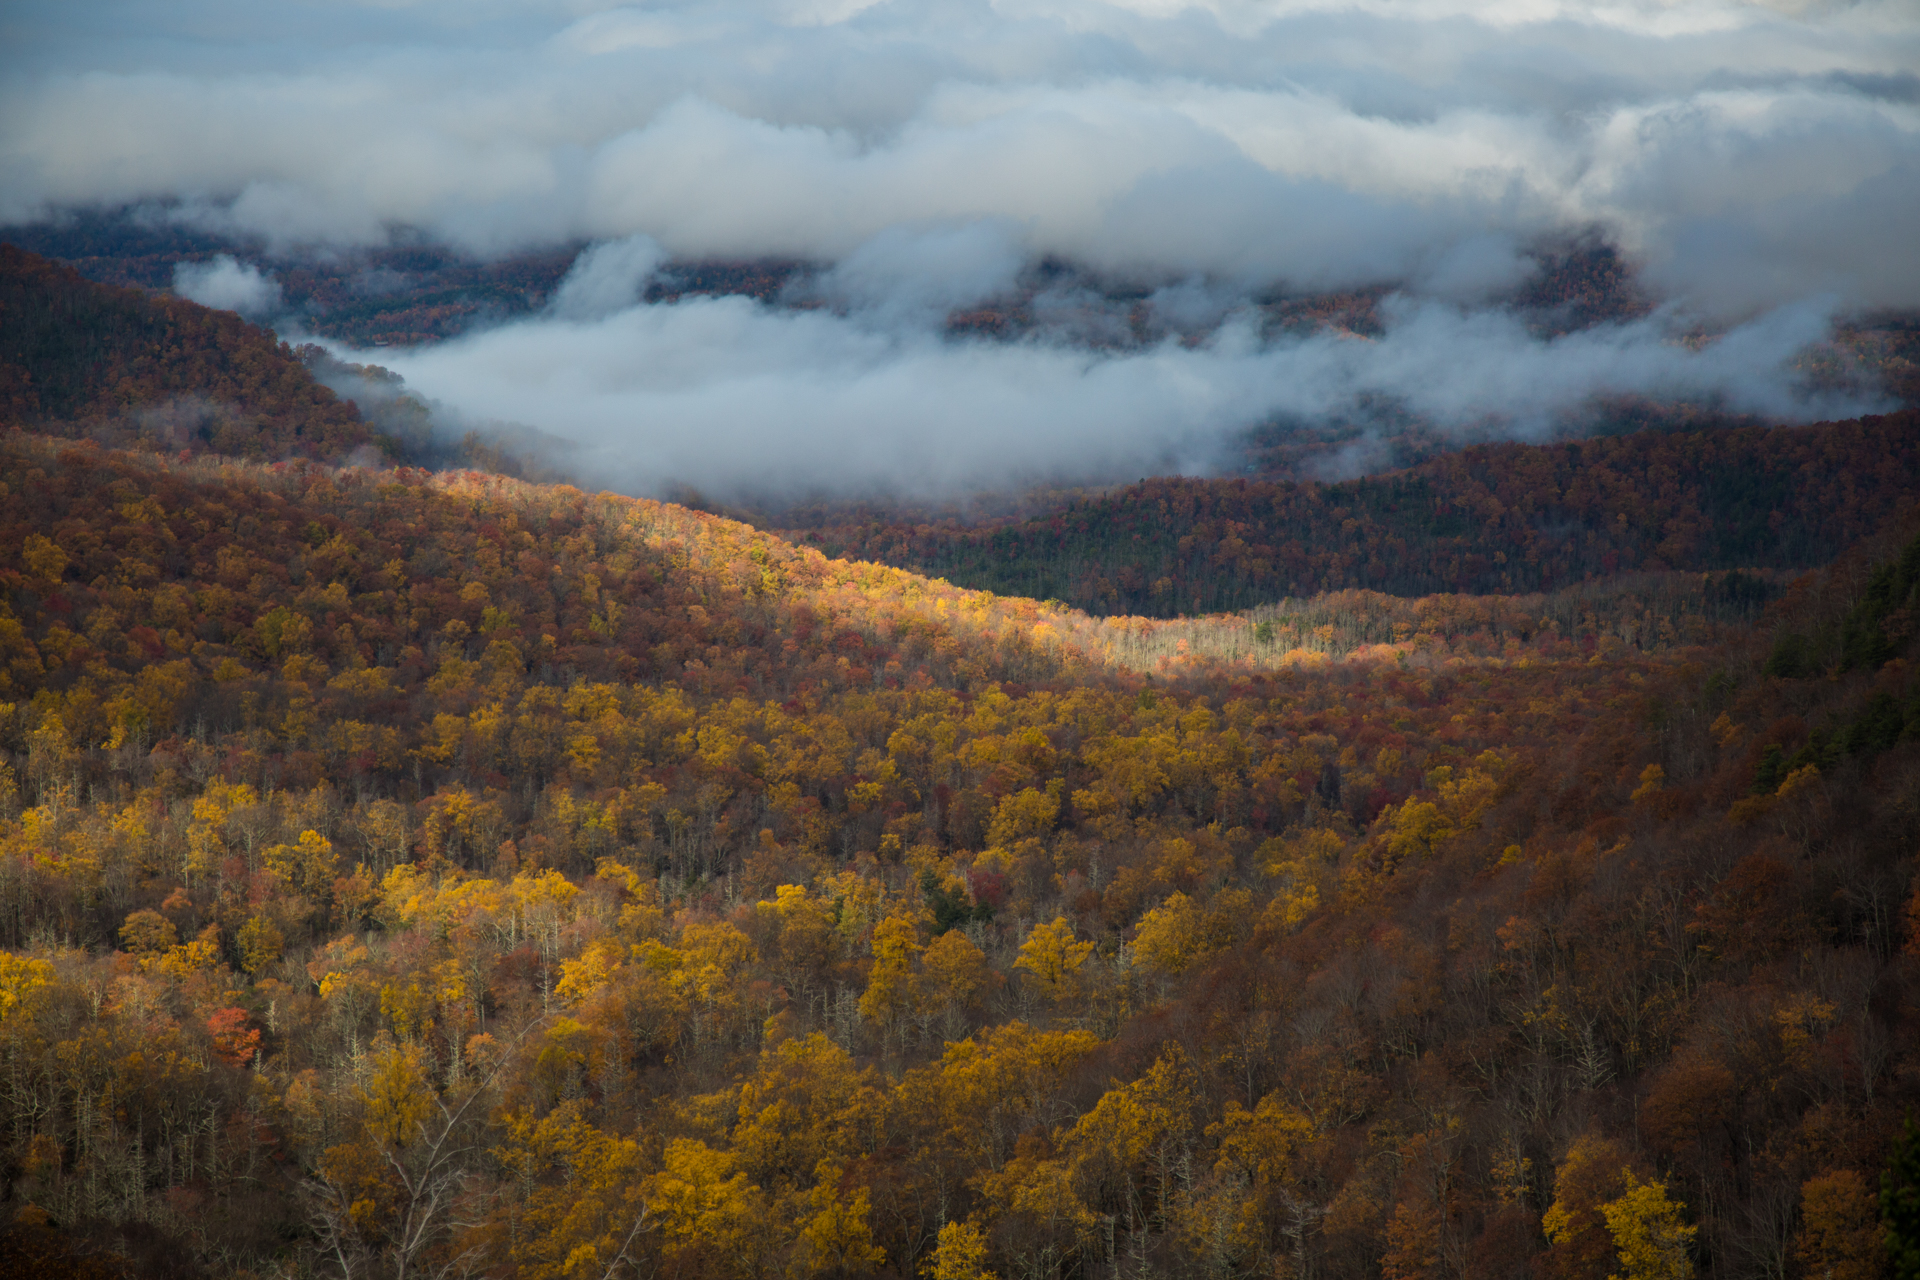 Trees changing color covering hills and valley under low hanging clouds.